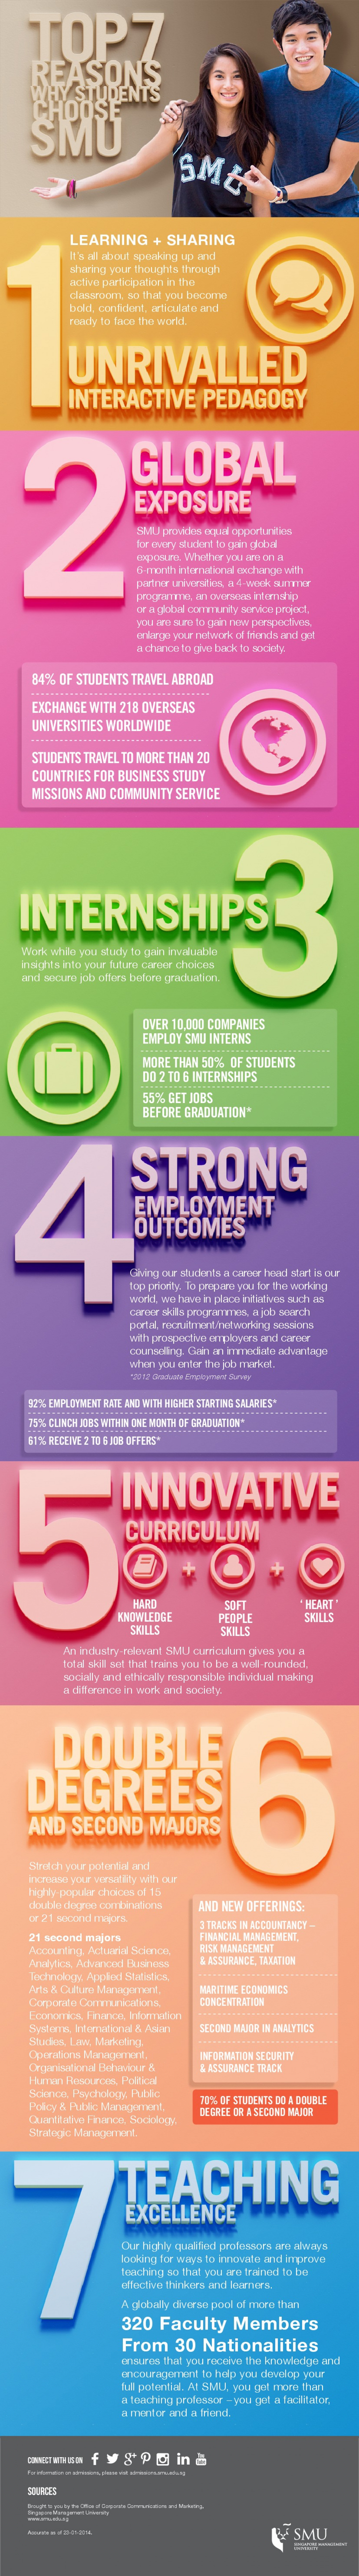 Top 7 Reasons Why Students Choose SMU Infographic